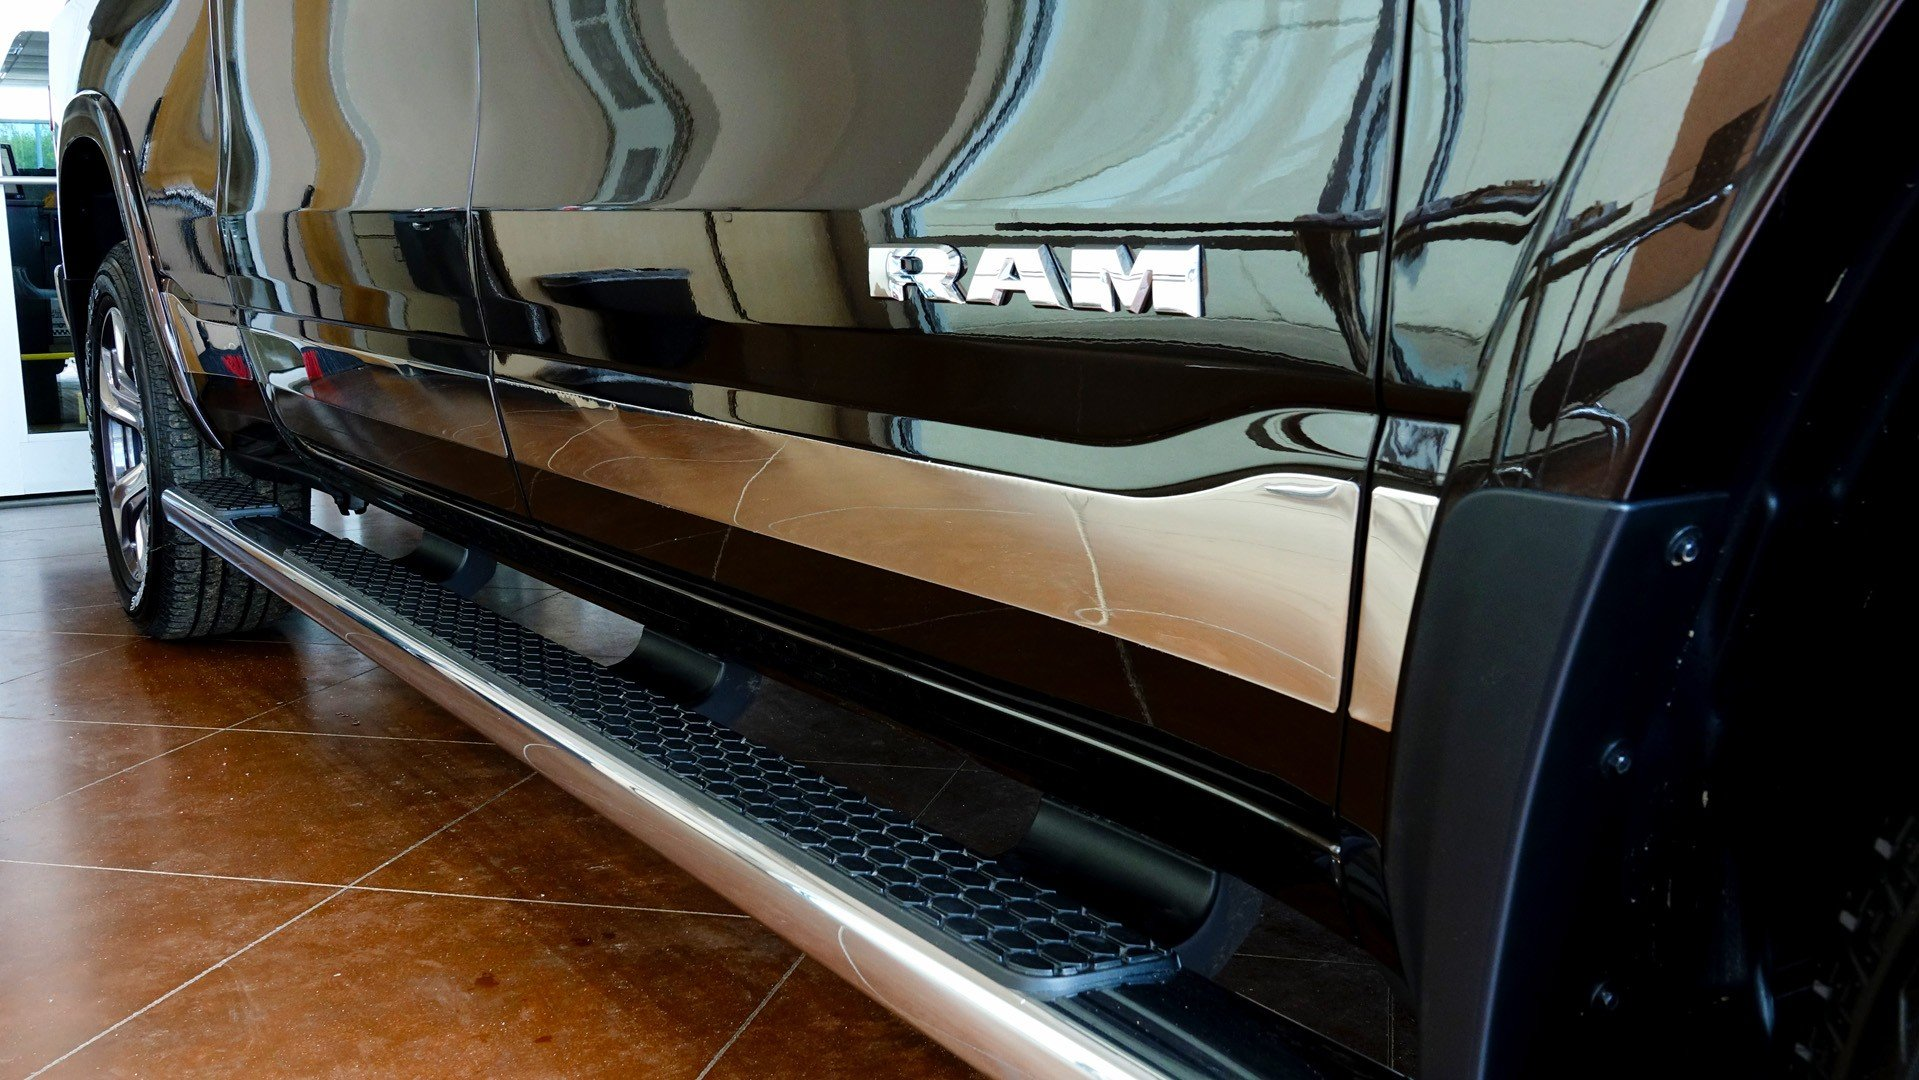 Ram 1500 Accessories - Nerf Bar